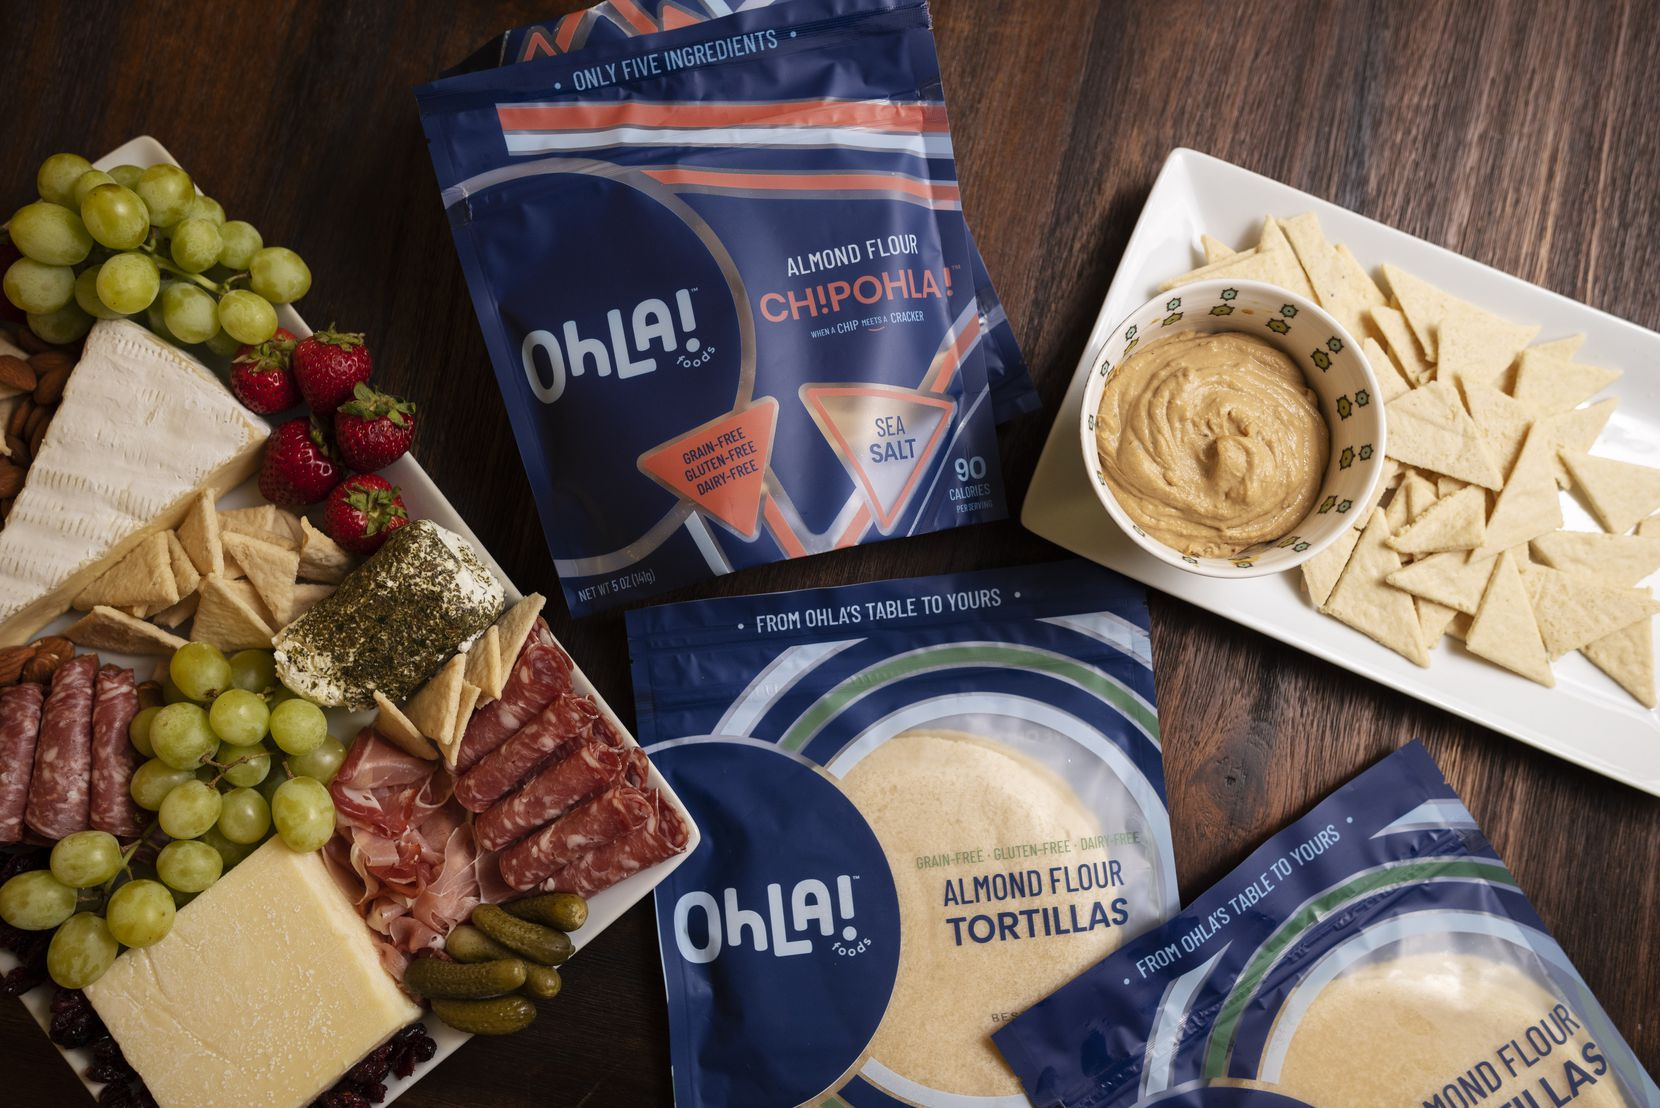 Schwalb's products include almond flour tortillas and sea salt chips.